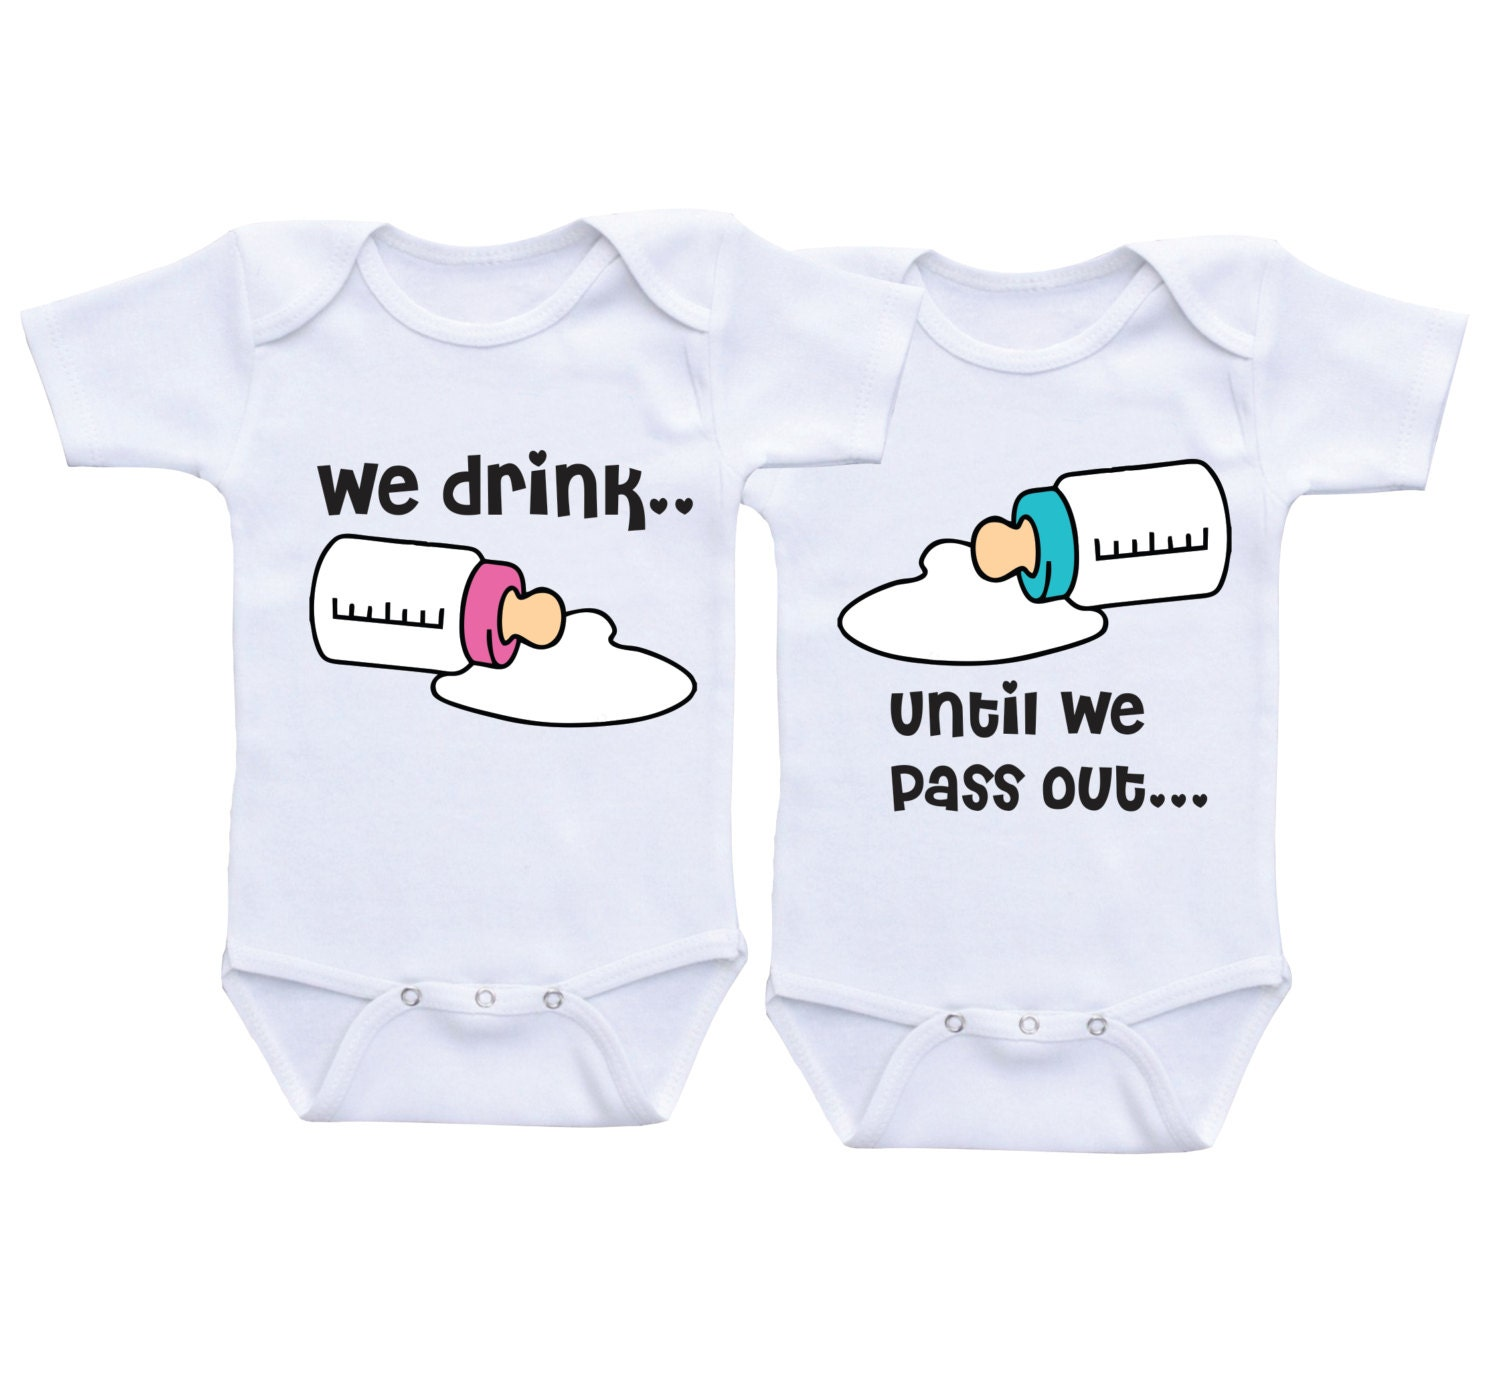 double bubble twin outfits twin baby gift by daiichibandesigns, Baby shower